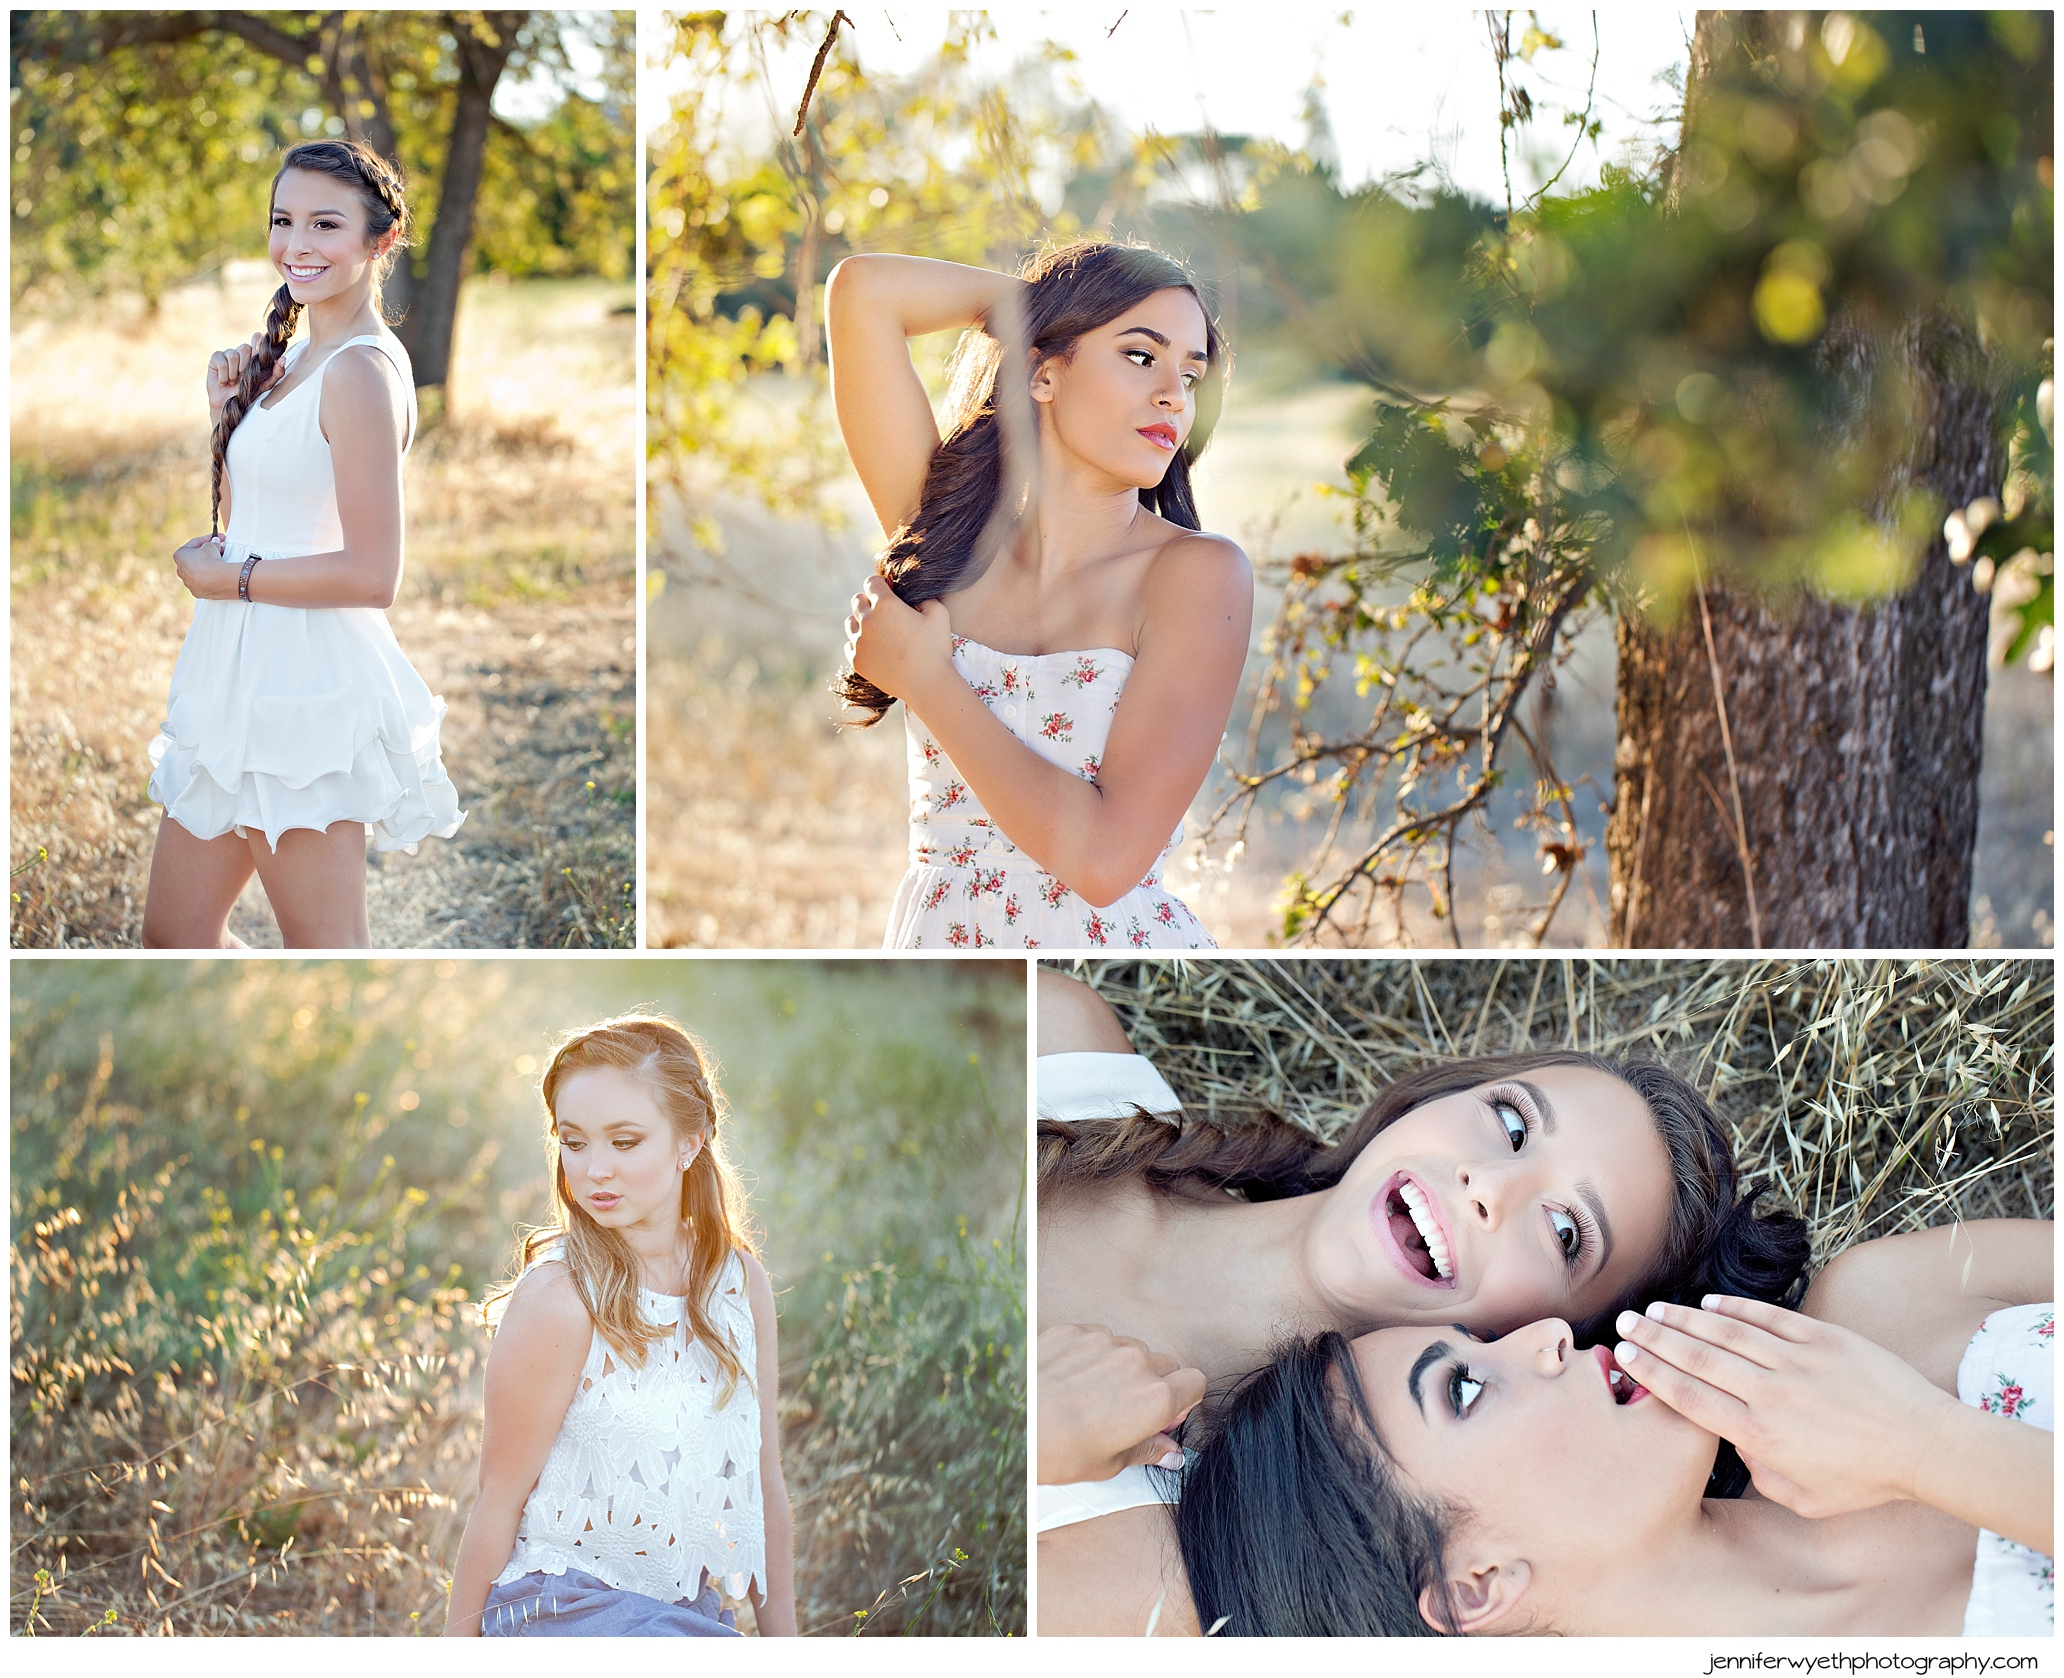 Jennifer-Wyeth-photography-senior-pictures-colorado-springs-photographer_0152.jpg